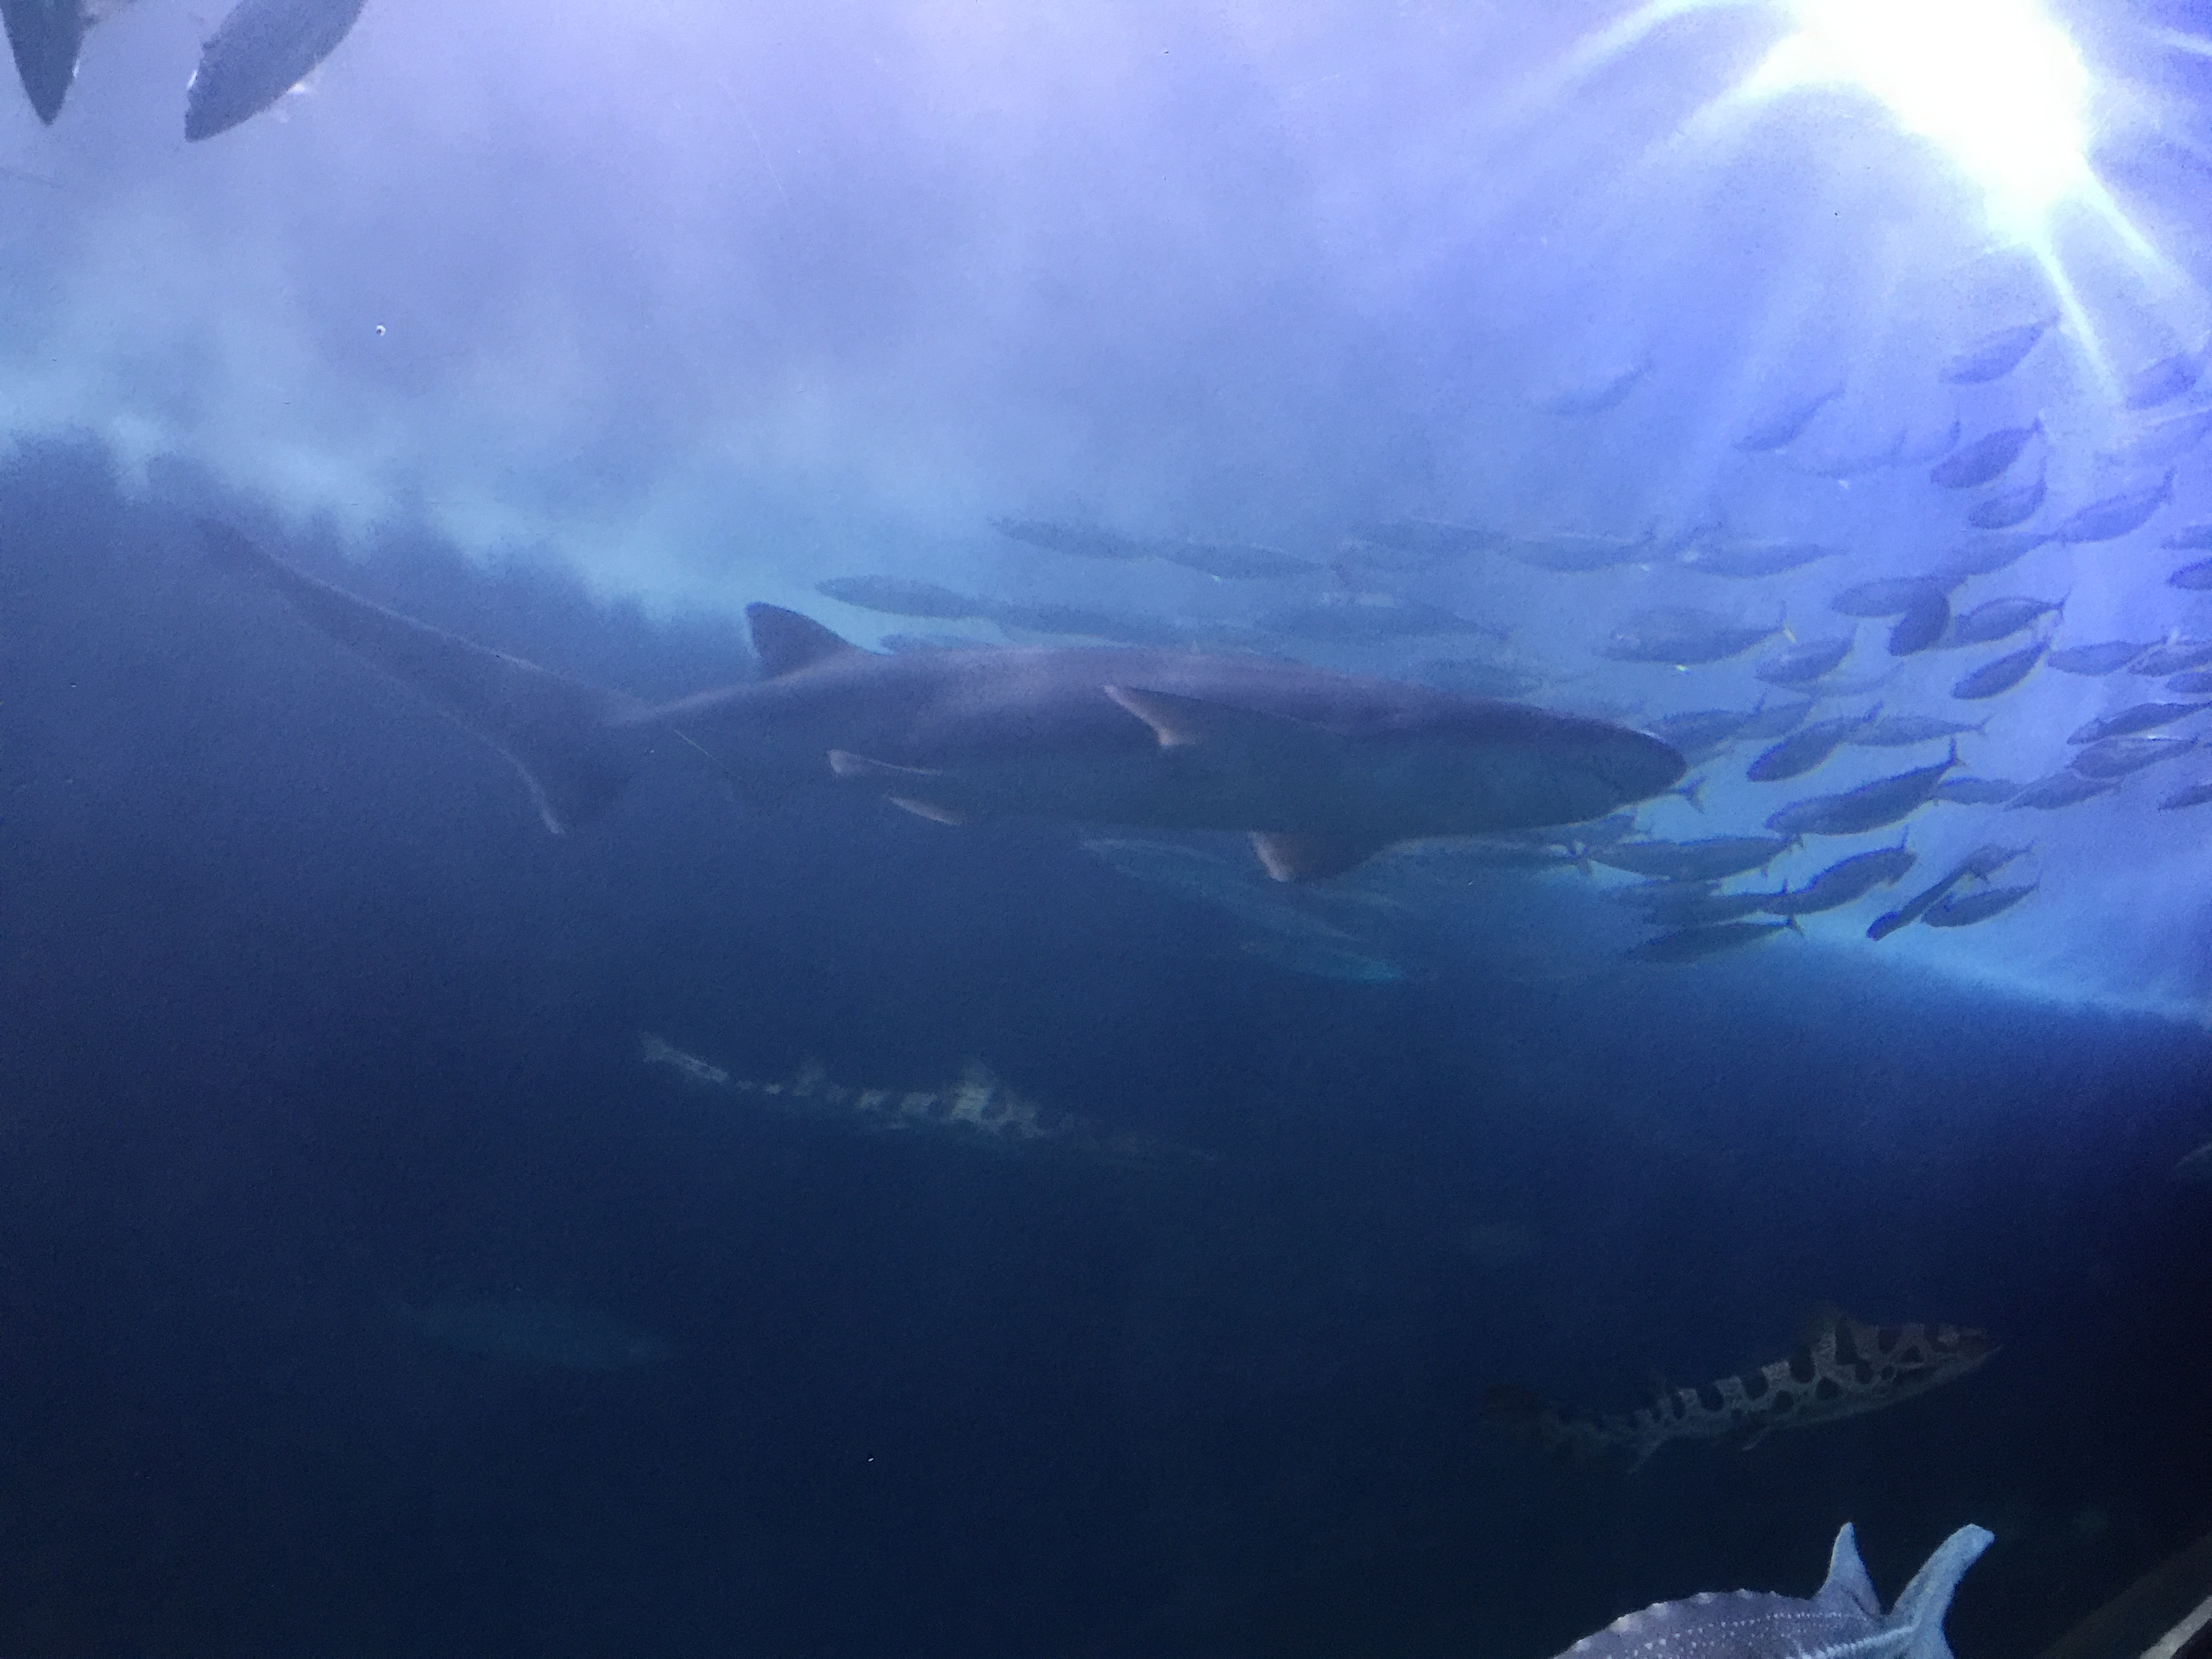 Sun rays burst into an aquarium containing a medium sized shark and a large schoal of fish